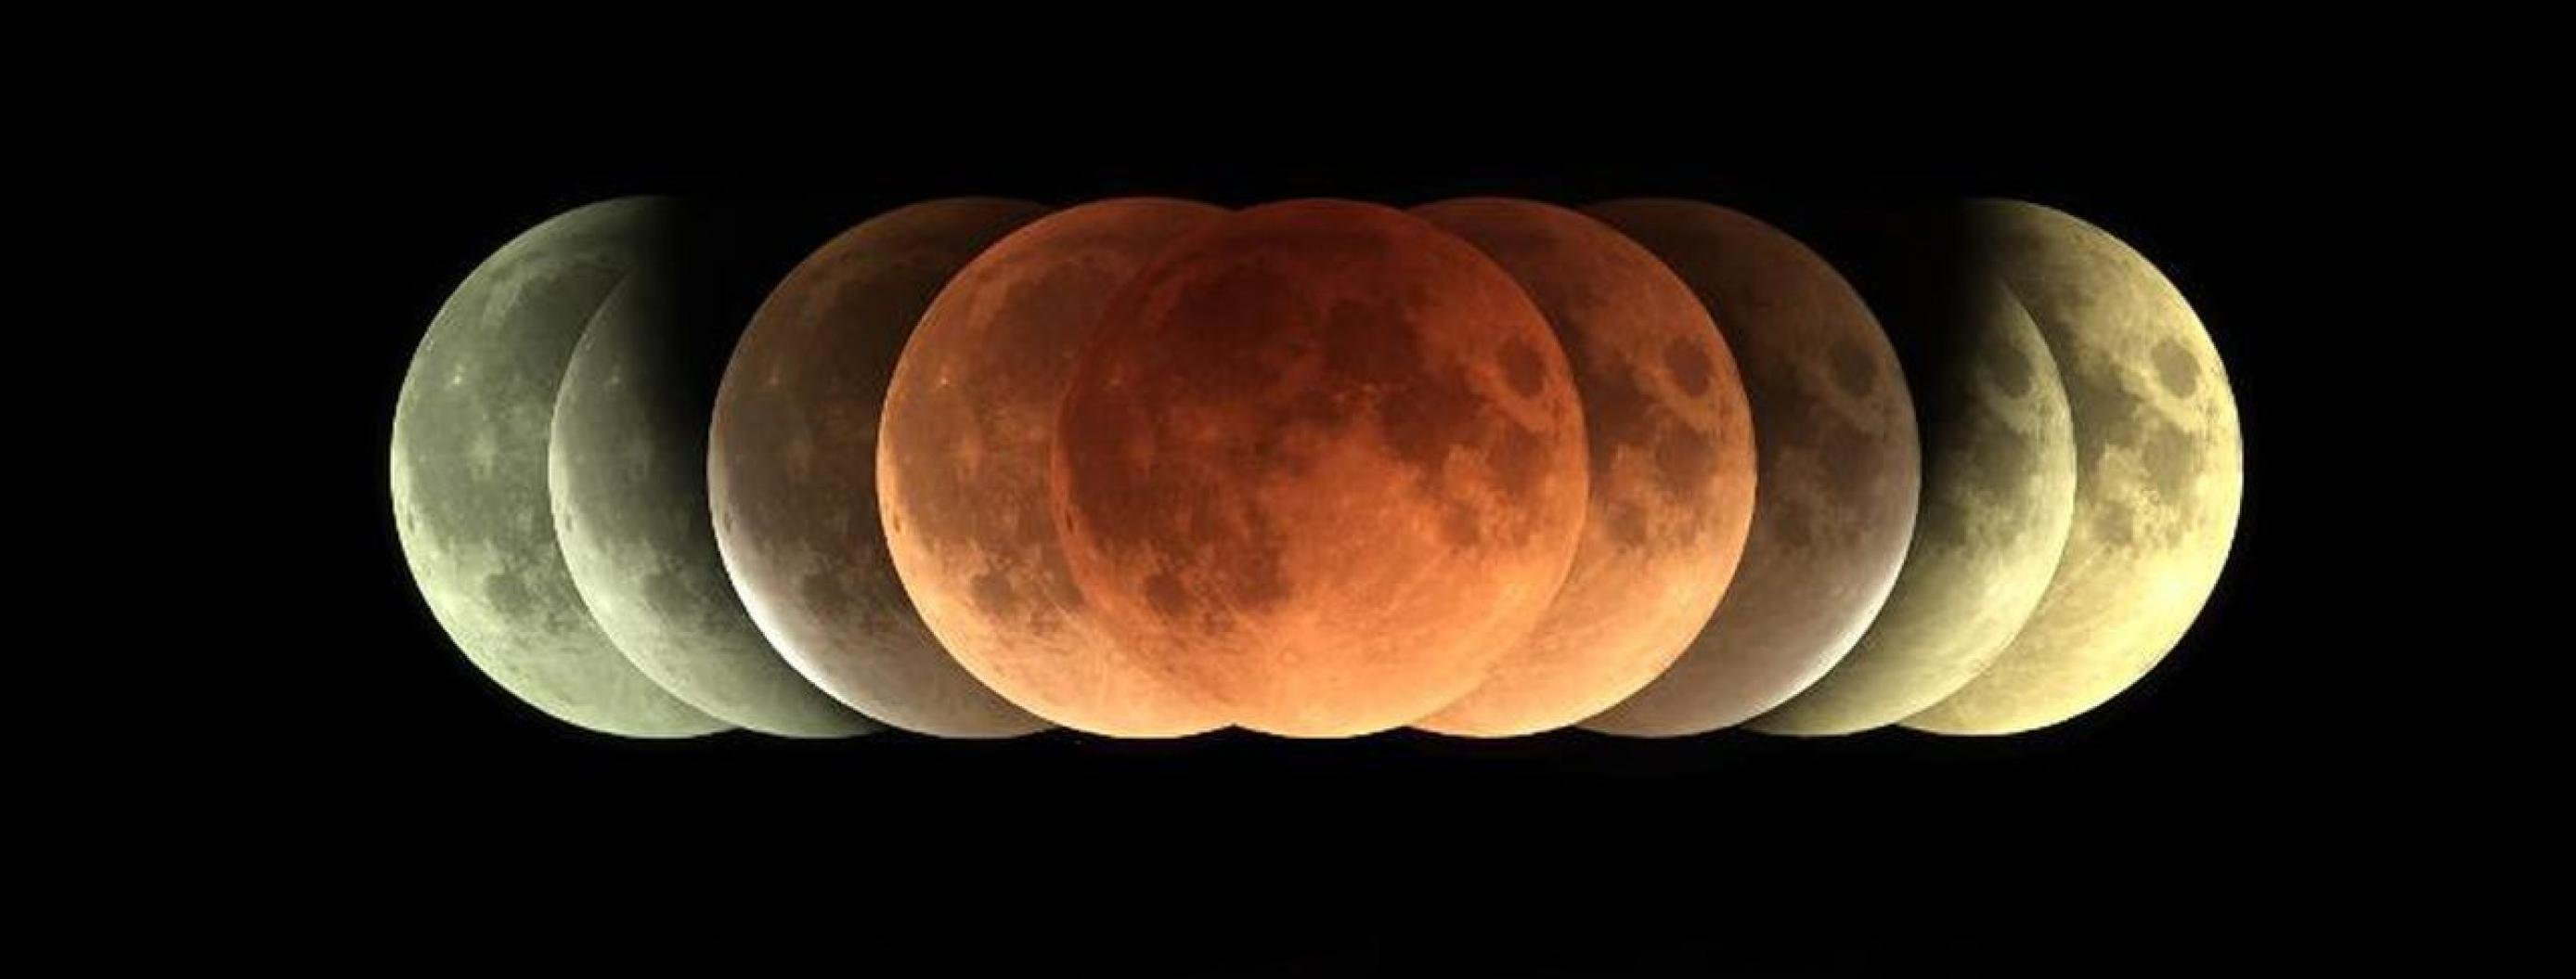 What You Should Know About the Super Blood Wolf Moon Lunar Eclipse